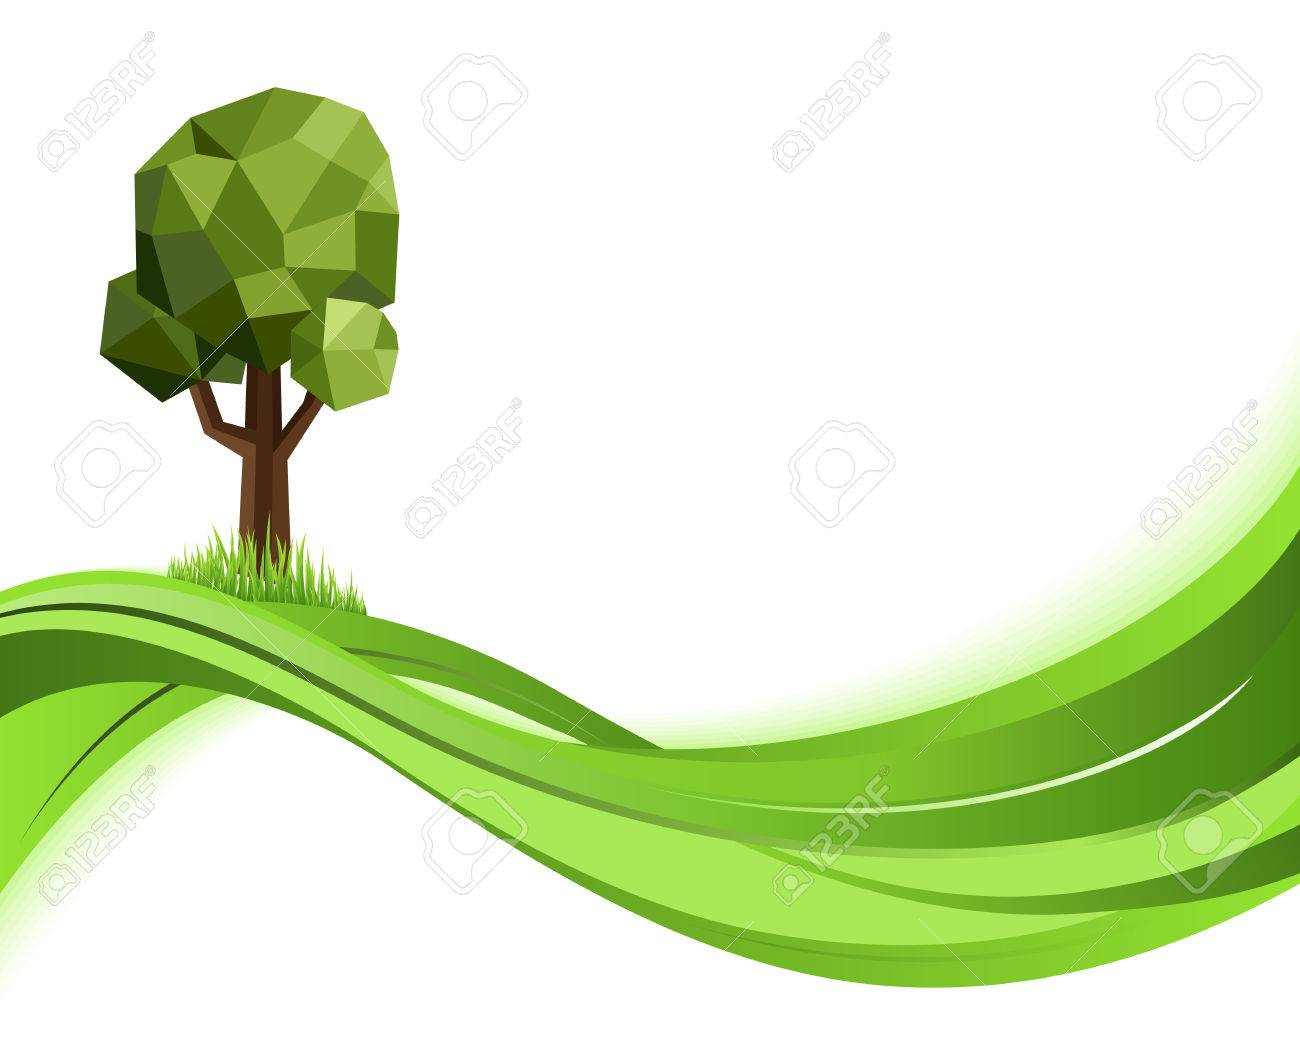 Green wave nature background. Eco concept illustration. Abstract green vector illustration with copyspace - 61658640